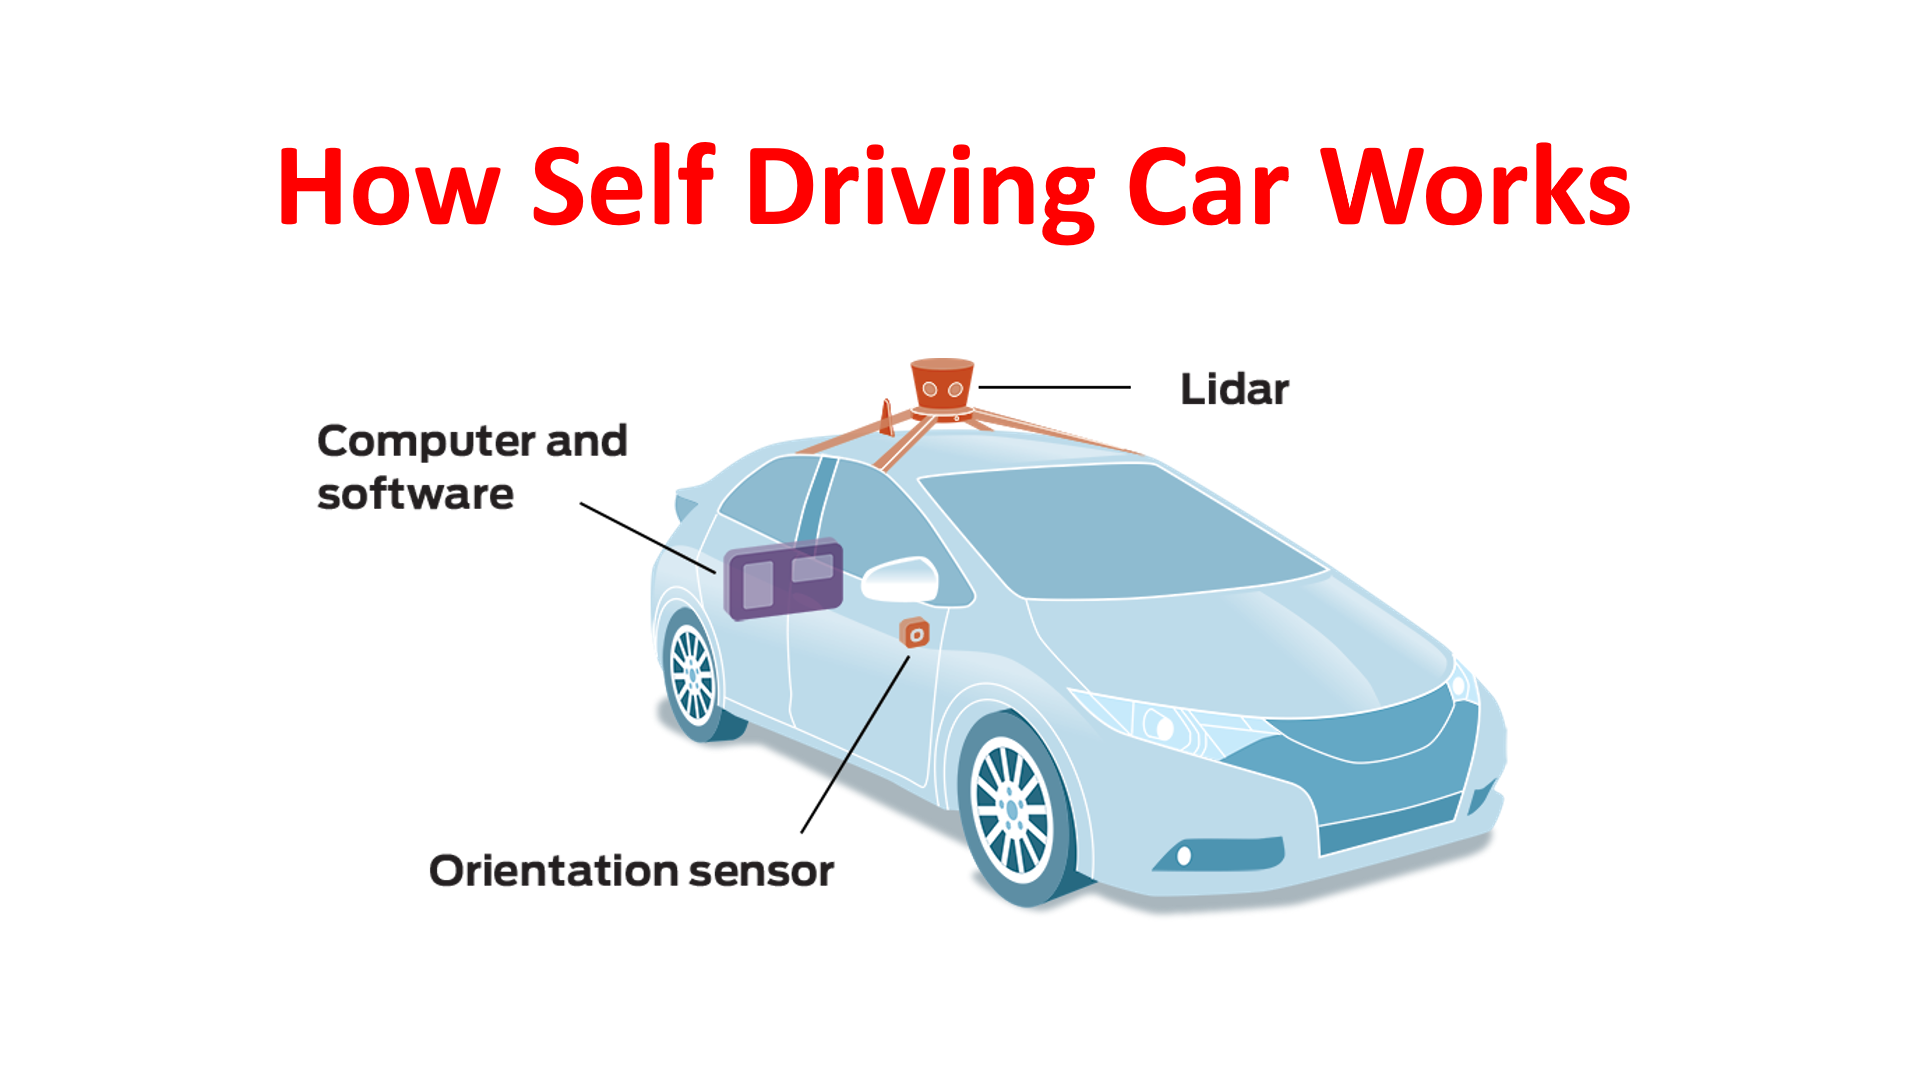 How Self Driving Car Works